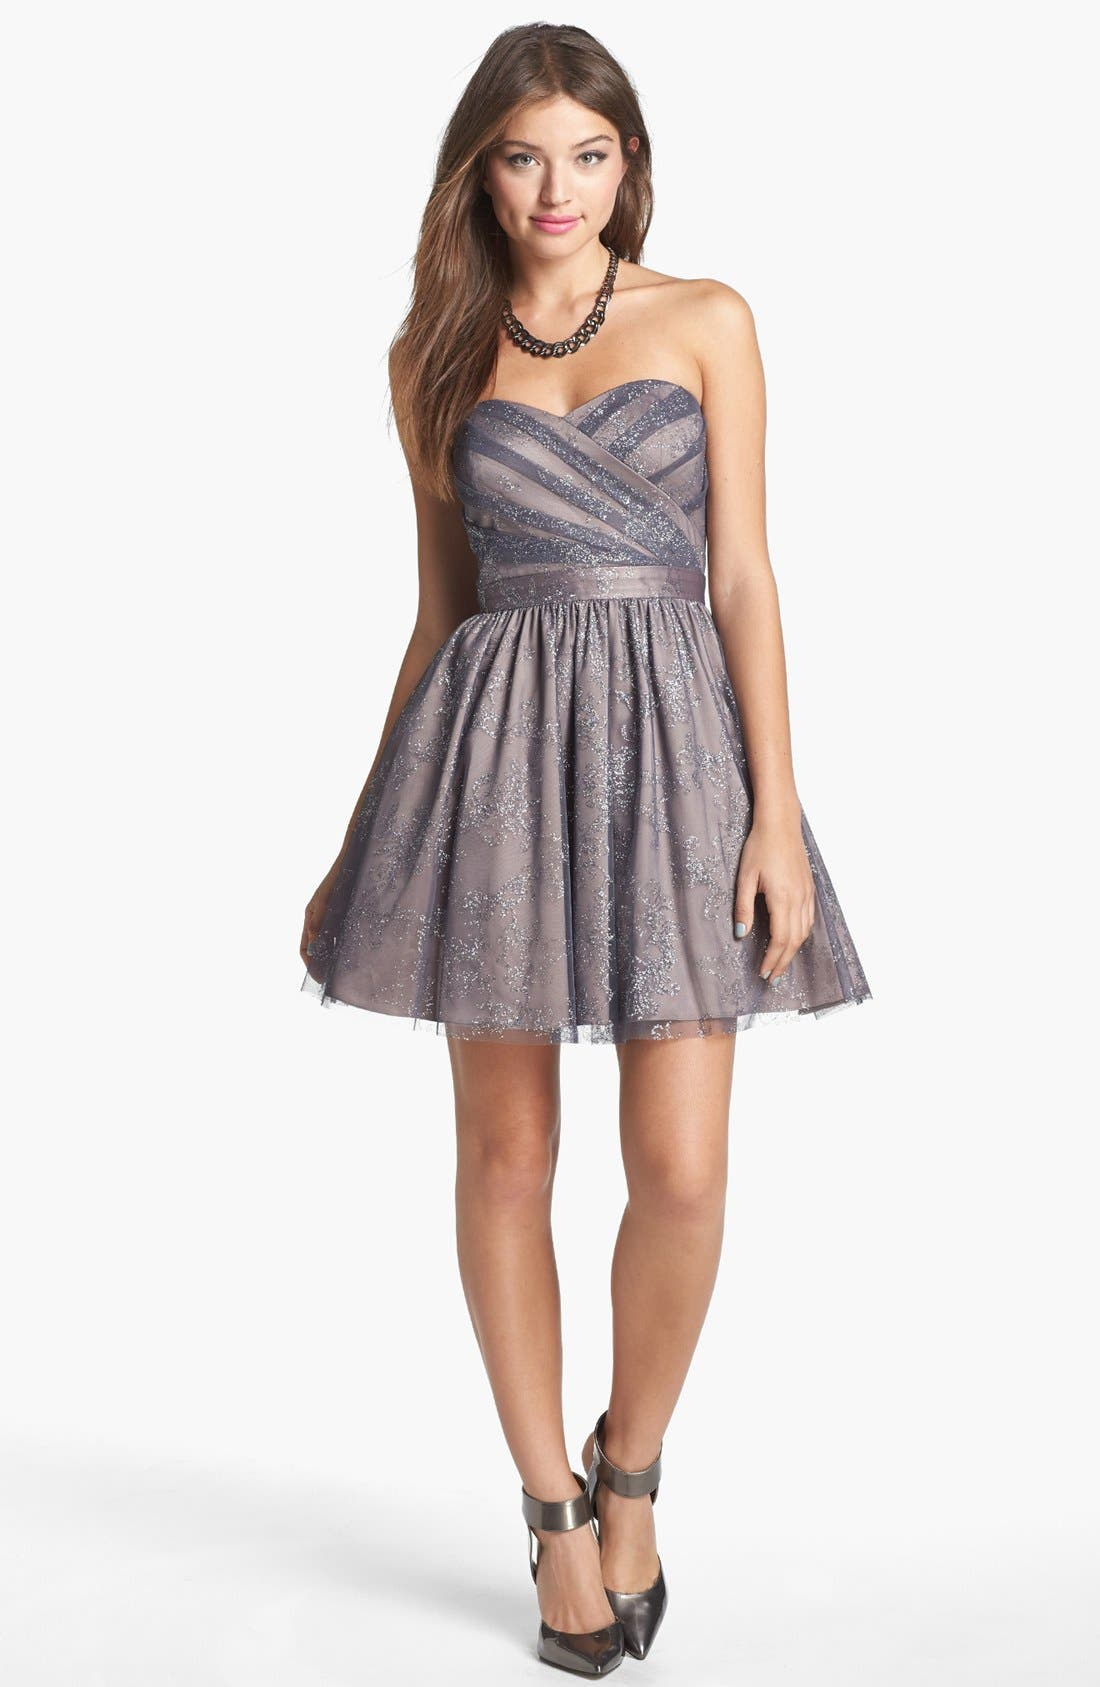 Main Image - Hailey by Adrianna Papell Metallic Mesh Fit & Flare Dress